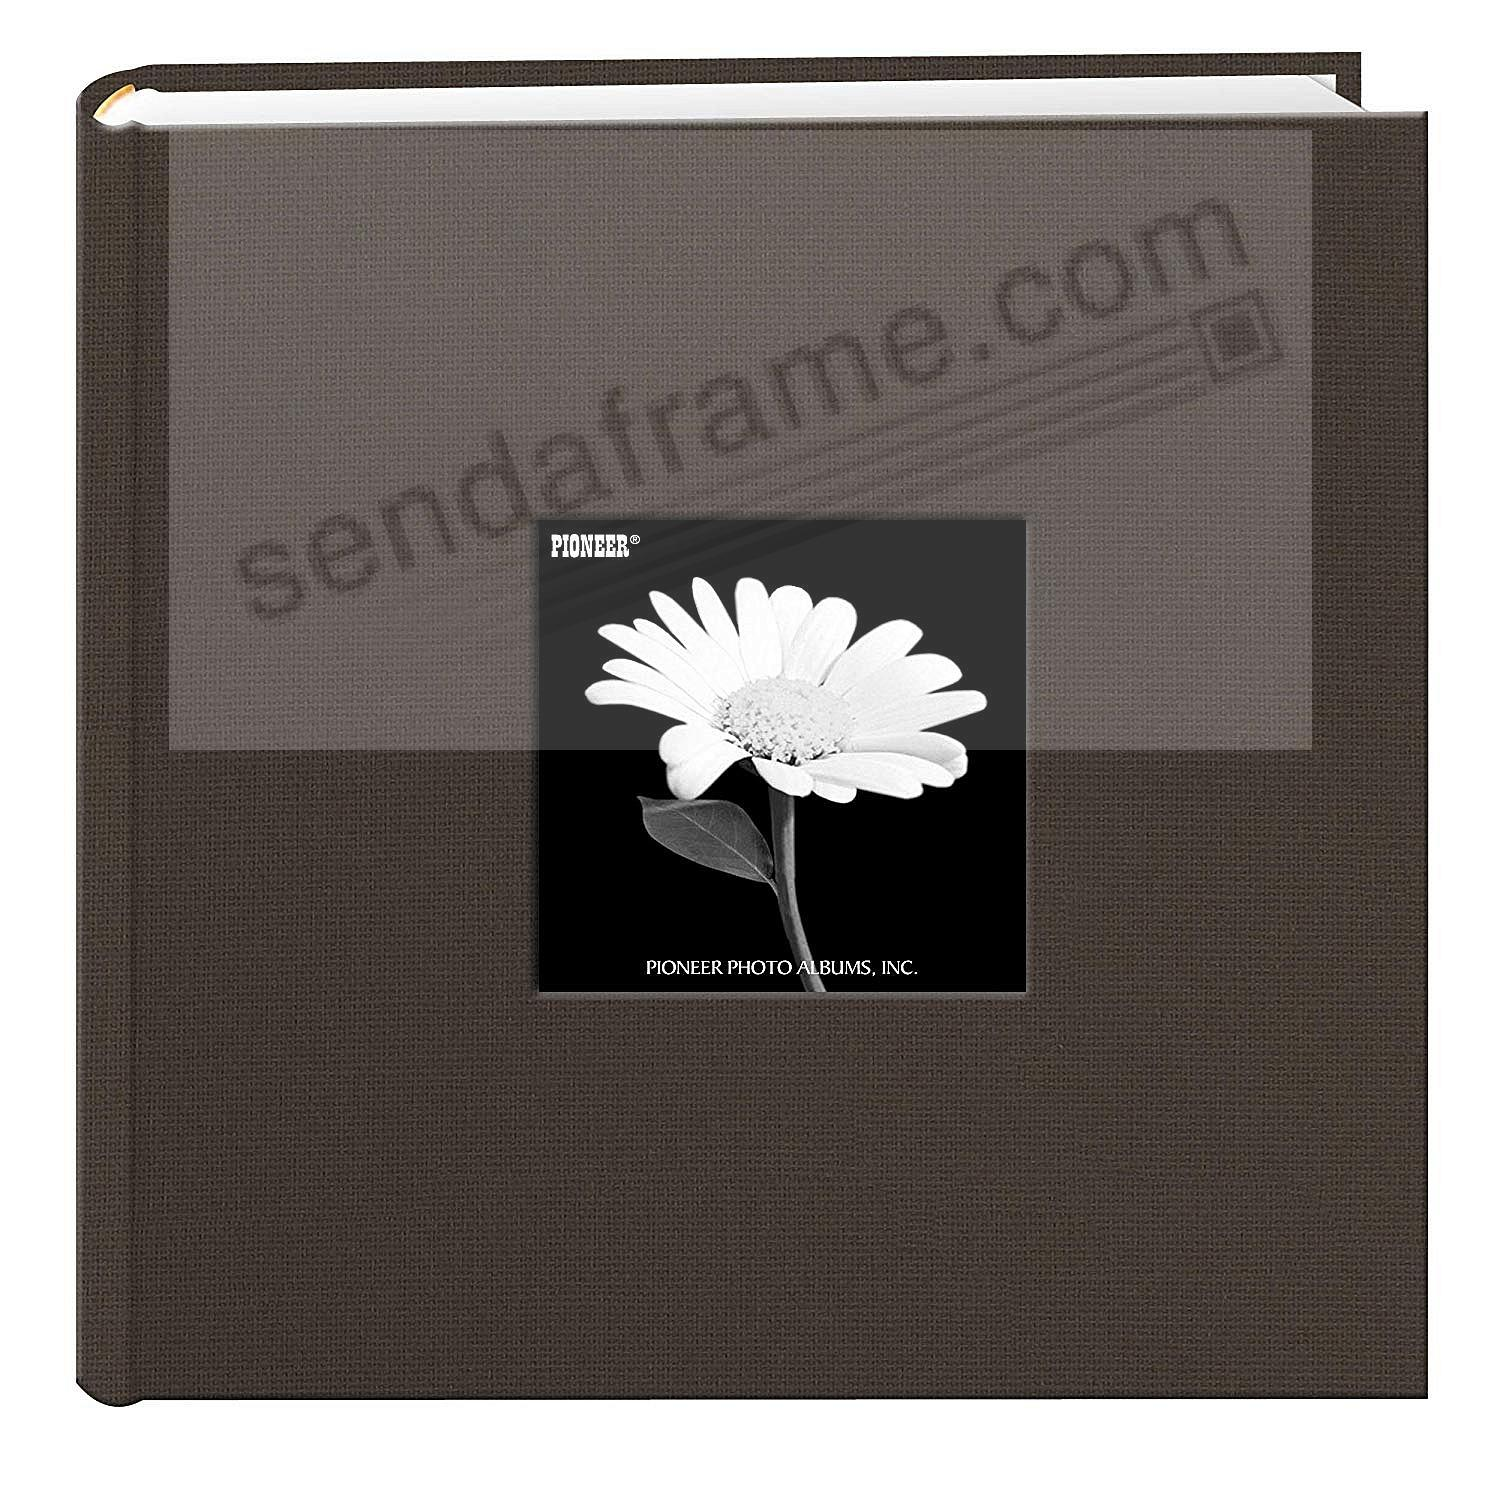 WARM MOCHA Cloth 2-up frame cover photo album by Pioneer®